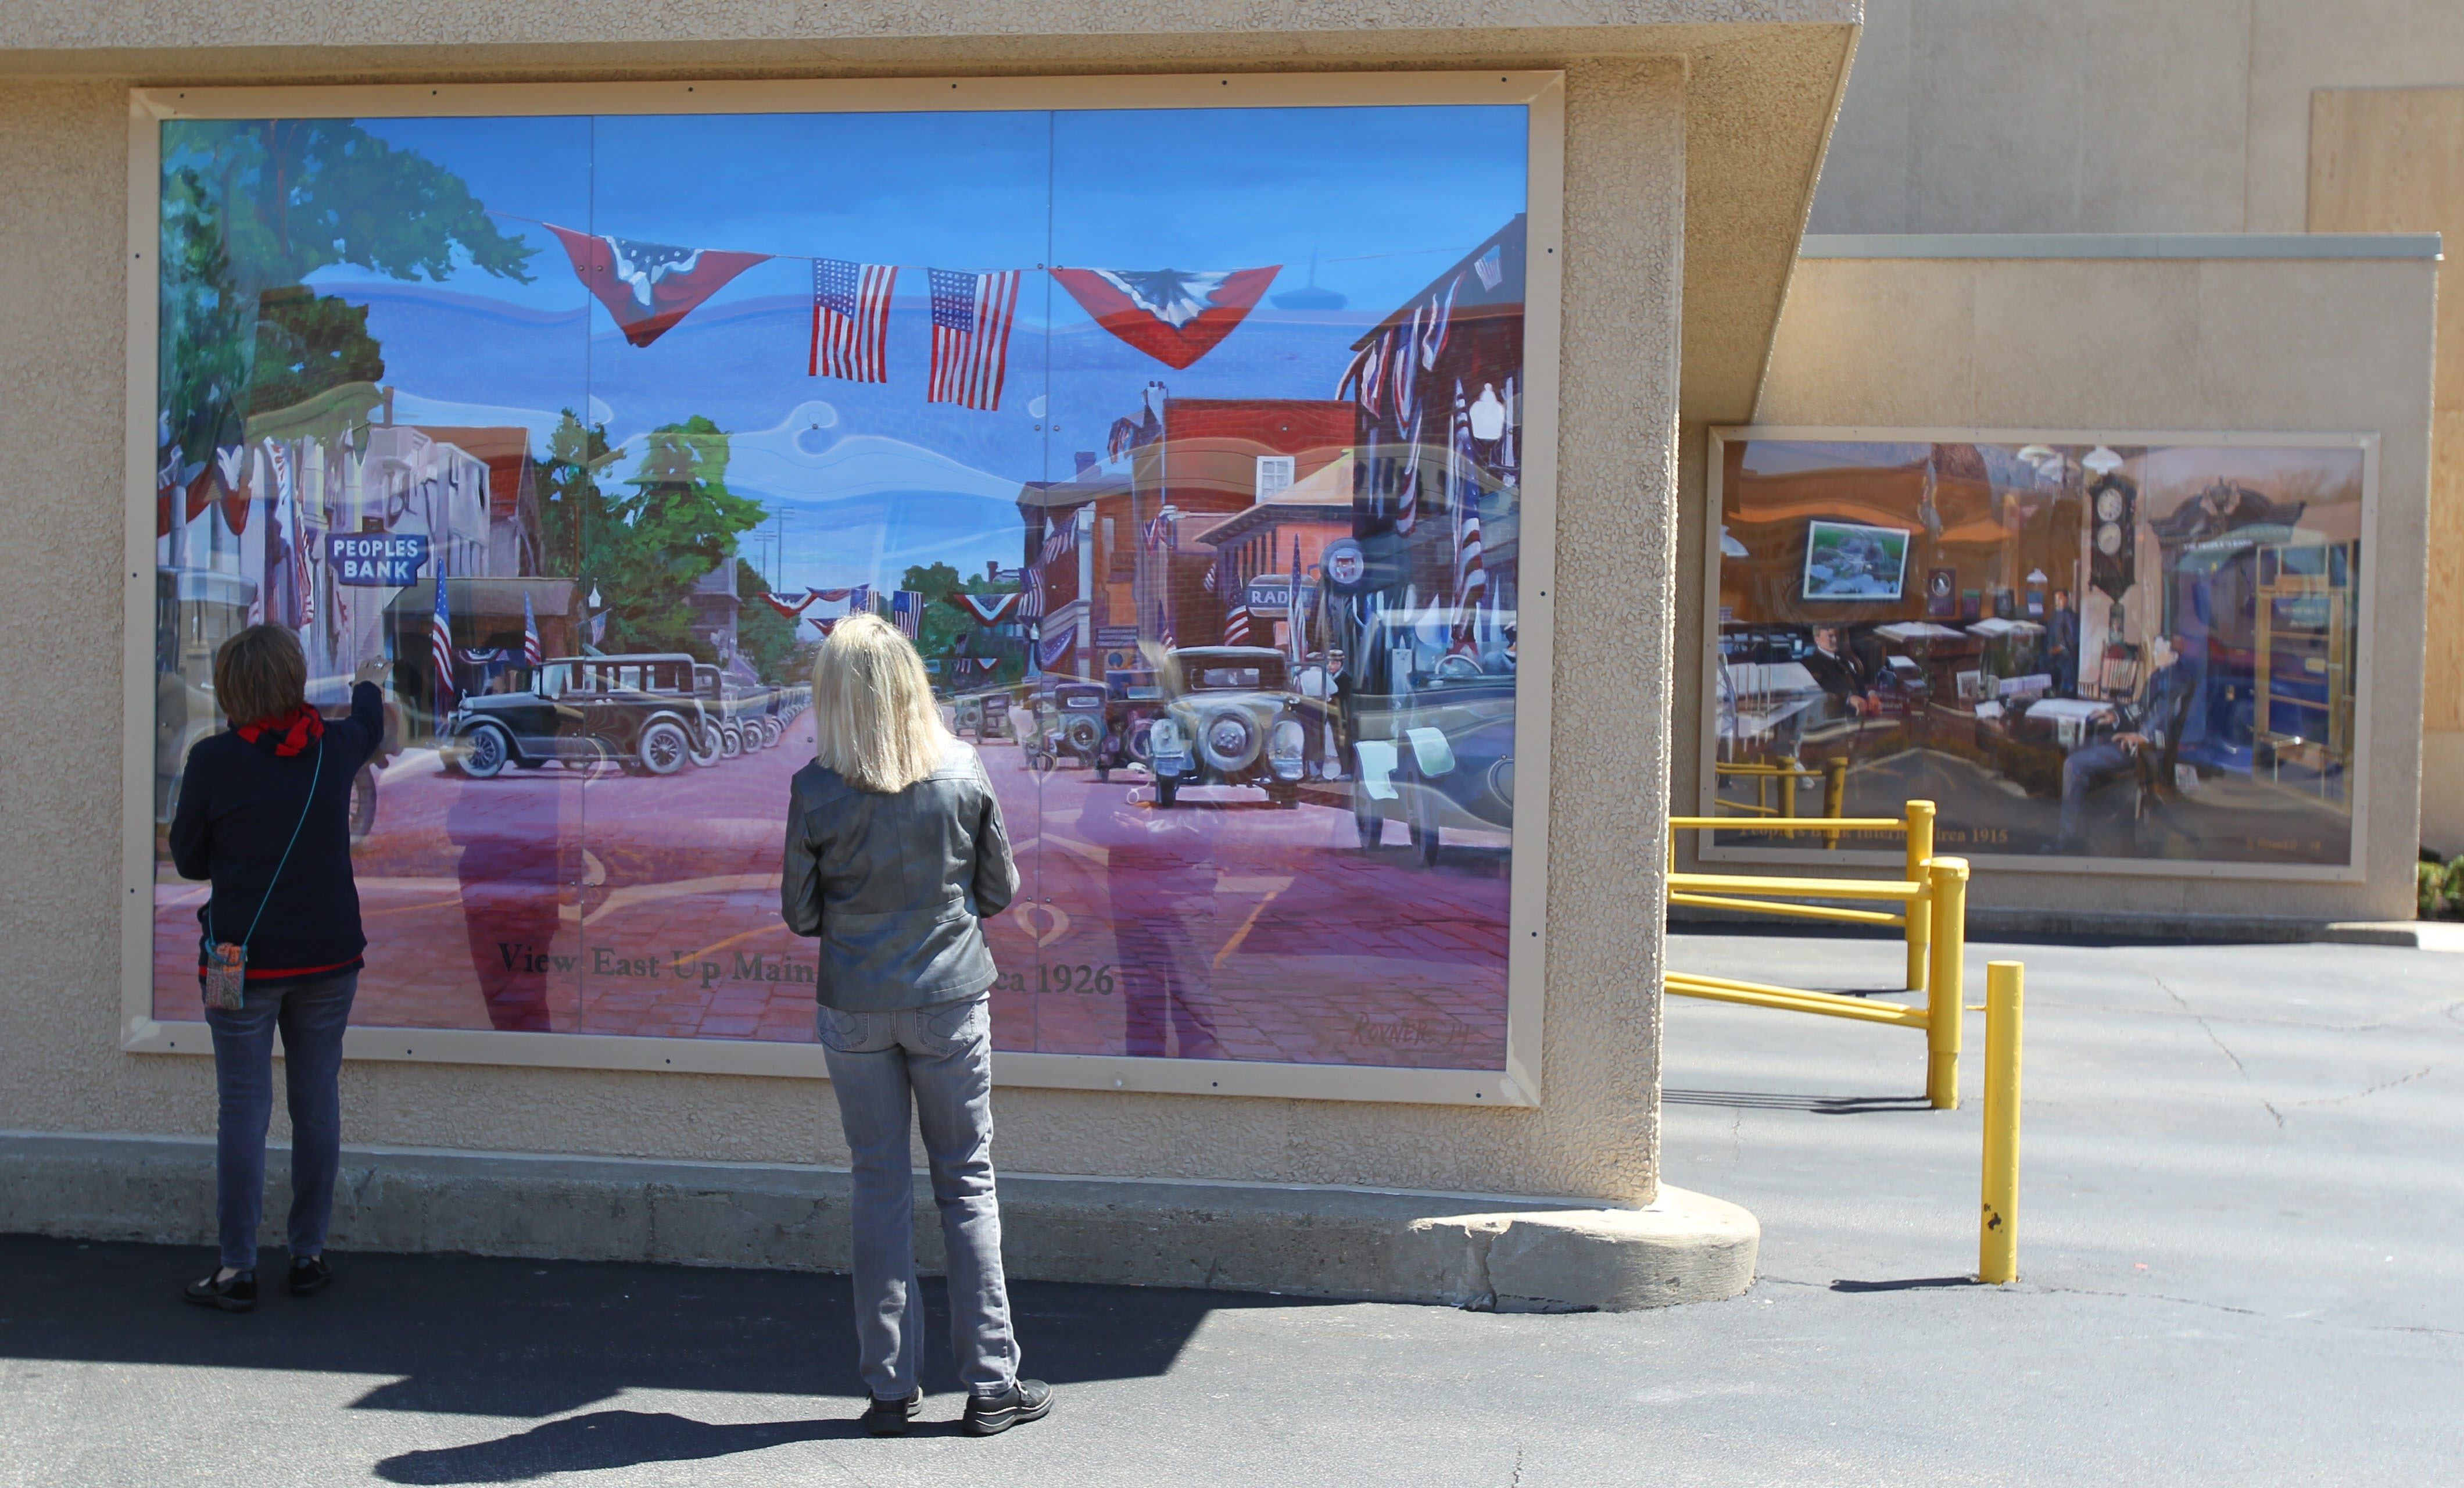 Annette Flynt, left, and Pam Patterson check out one of the new murals on the wall of the Bank of America building on Main Street in the Village of Hamburg.